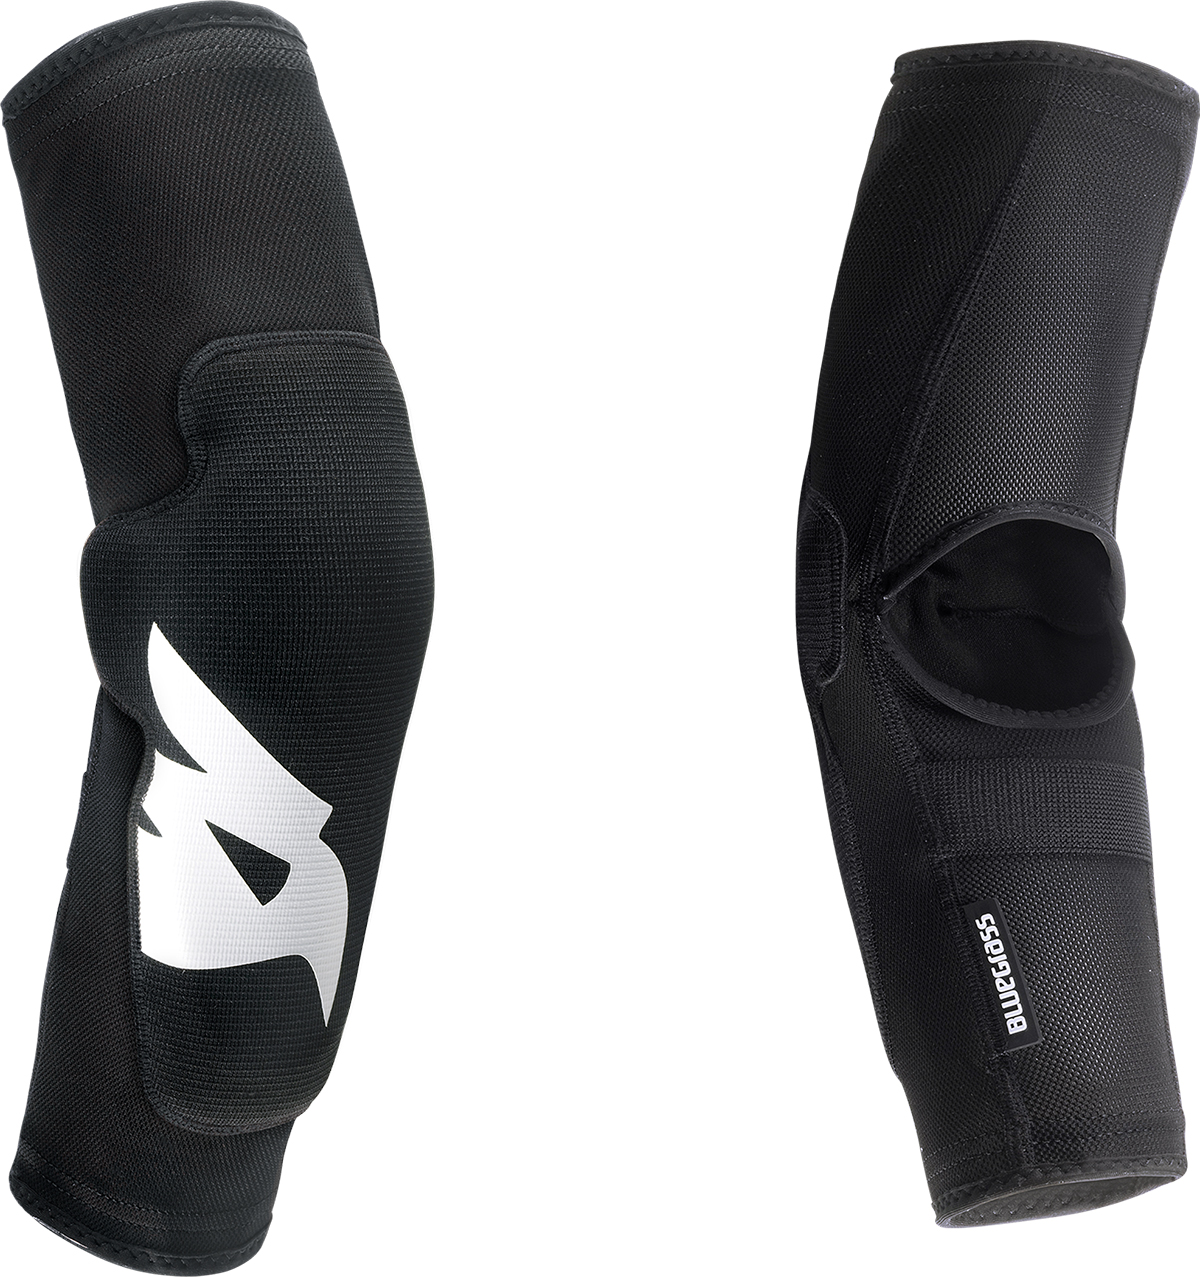 Bluegrass Skinny Elbow Guards | Amour